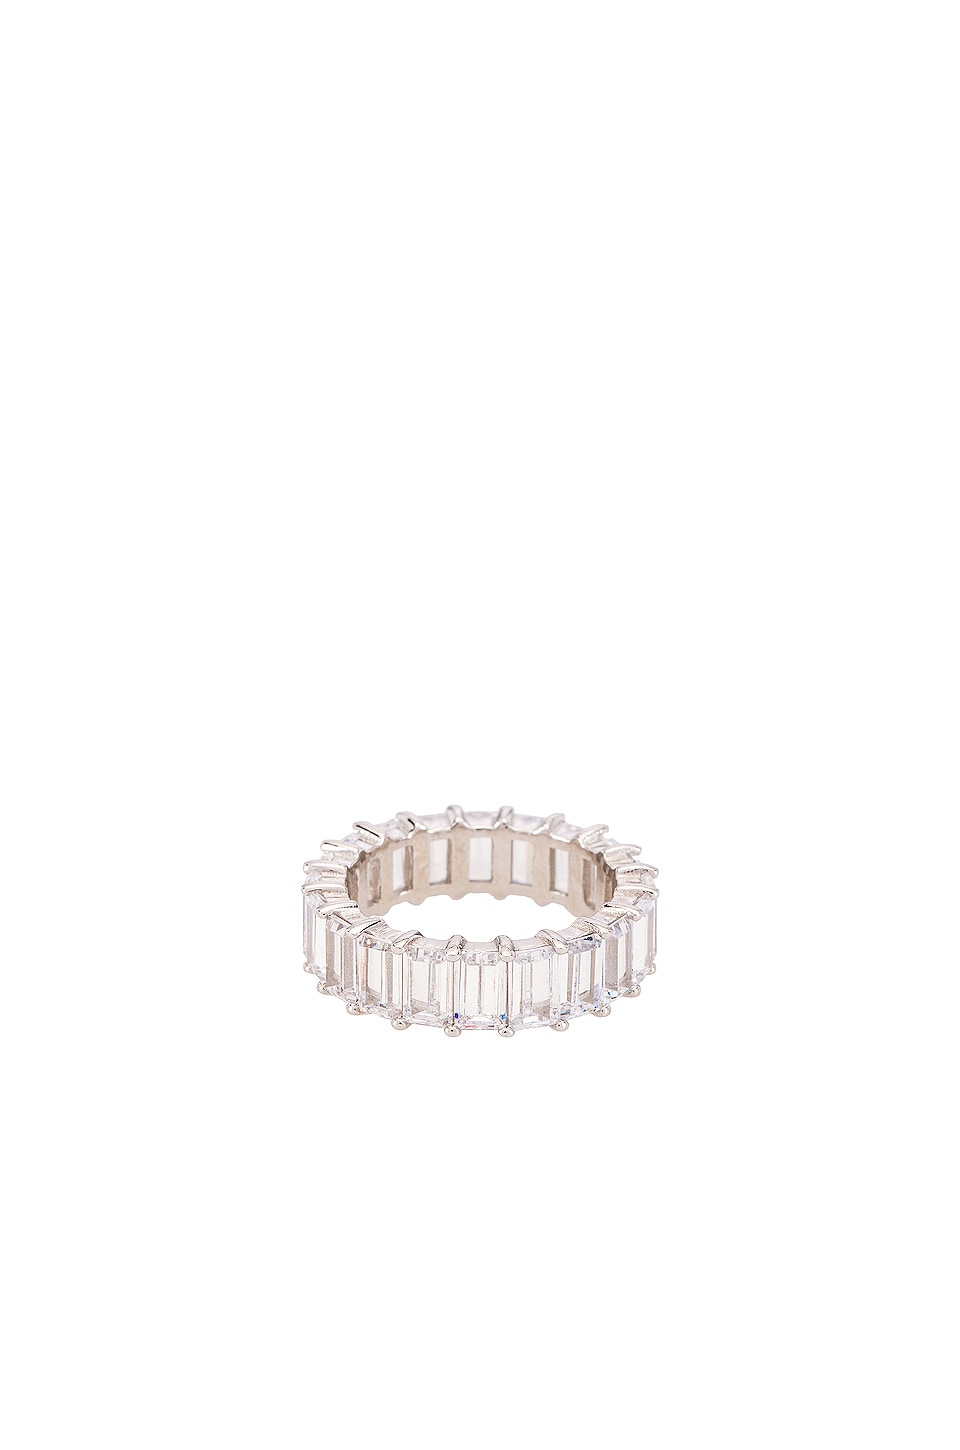 The M Jewelers NY BAGUE EMERALD CUT PAVE